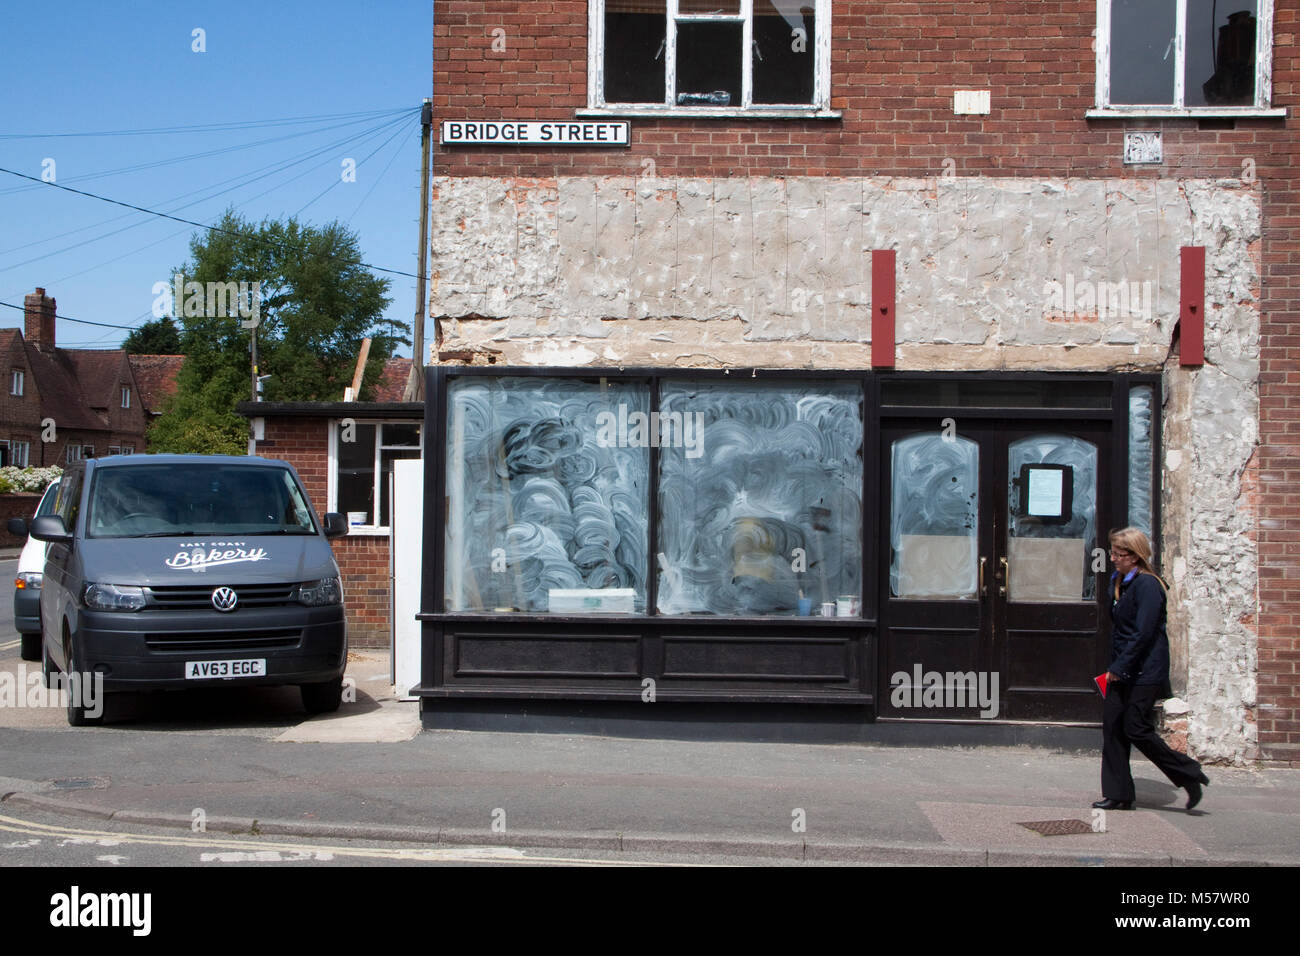 A woman walks past a shop having a makeover - Stock Image